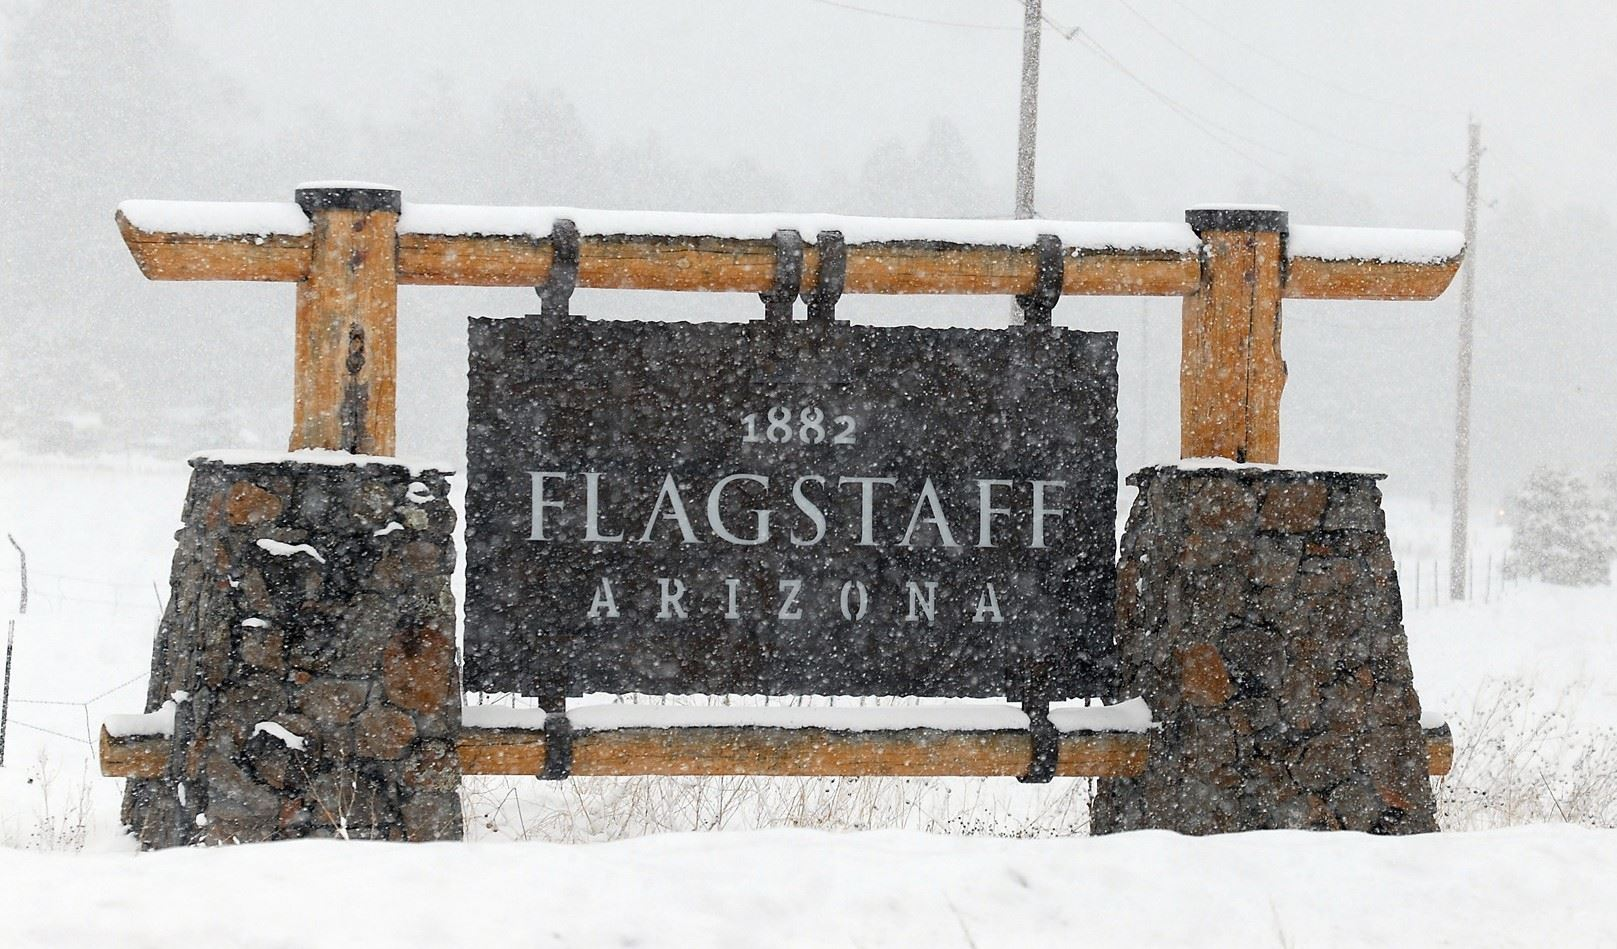 Flagstaff Arizona Gateway in Snowstorm